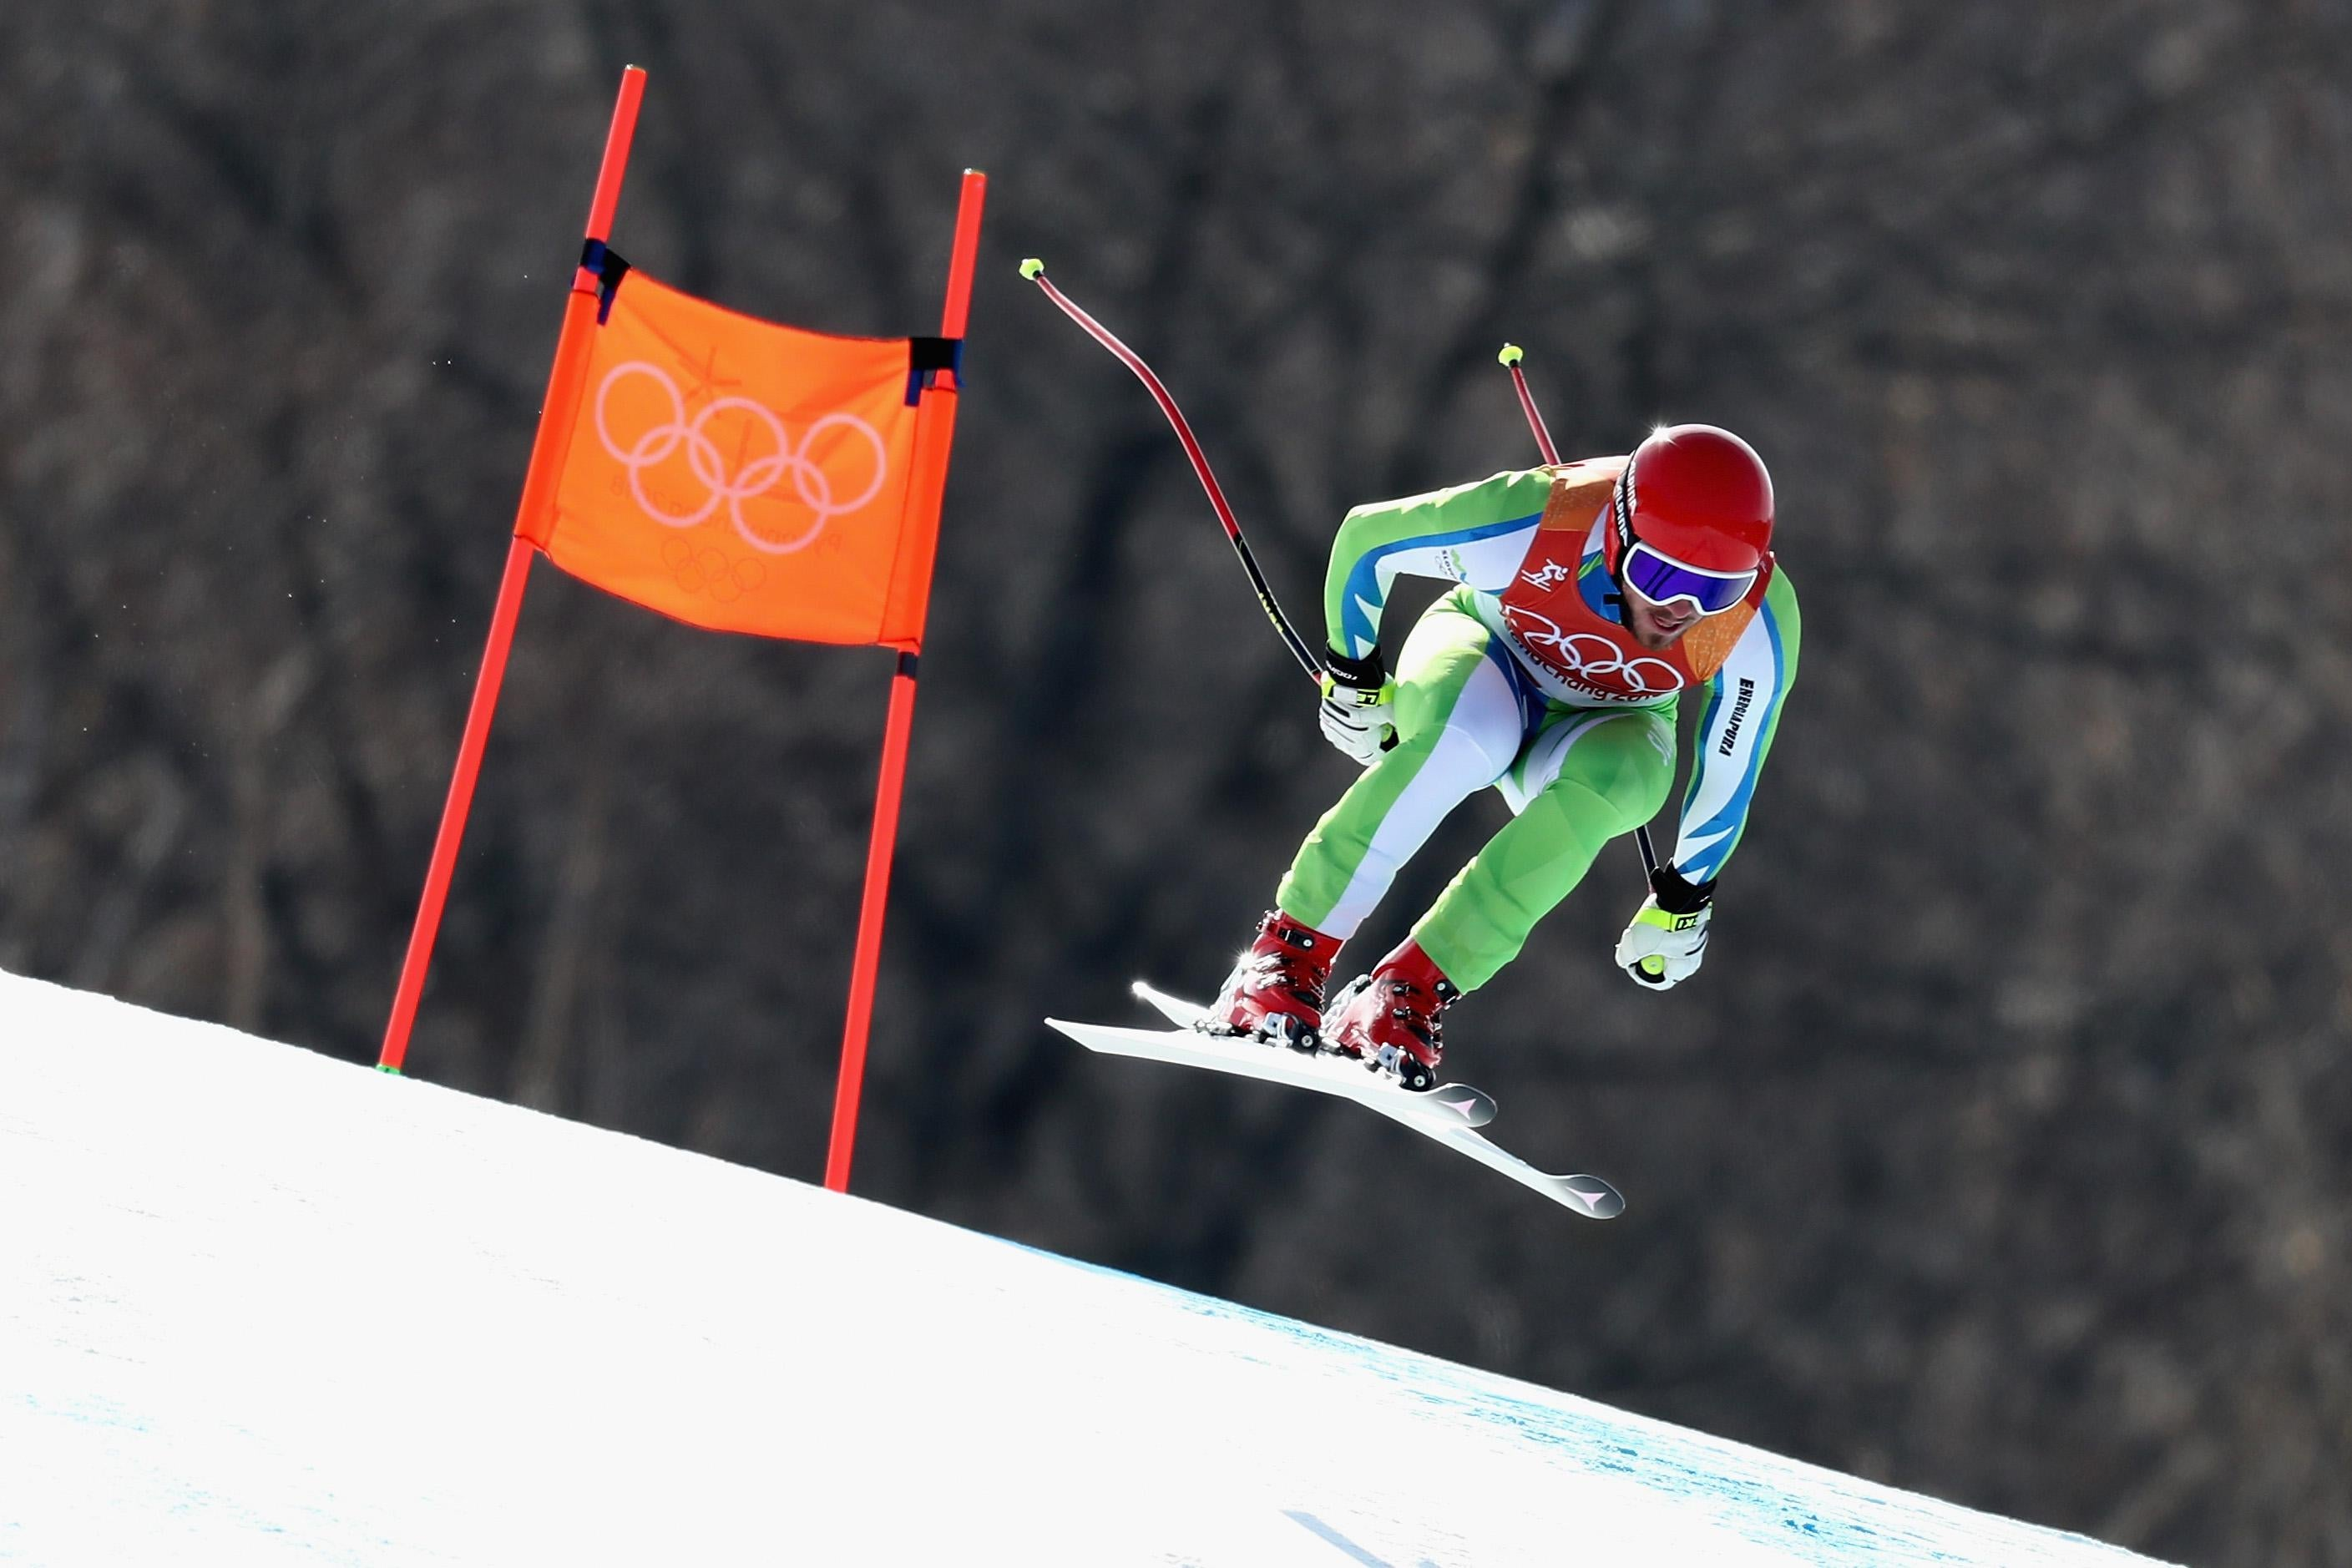 PYEONGCHANG-GUN, SOUTH KOREA - FEBRUARY 15:  Miha Hrobat of Slovenia makes a run during the Men's Downhill on day six of the PyeongChang 2018 Winter Olympic Games at Jeongseon Alpine Centre on February 15, 2018 in Pyeongchang-gun, South Korea.  (Photo by Al Bello/Getty Images)